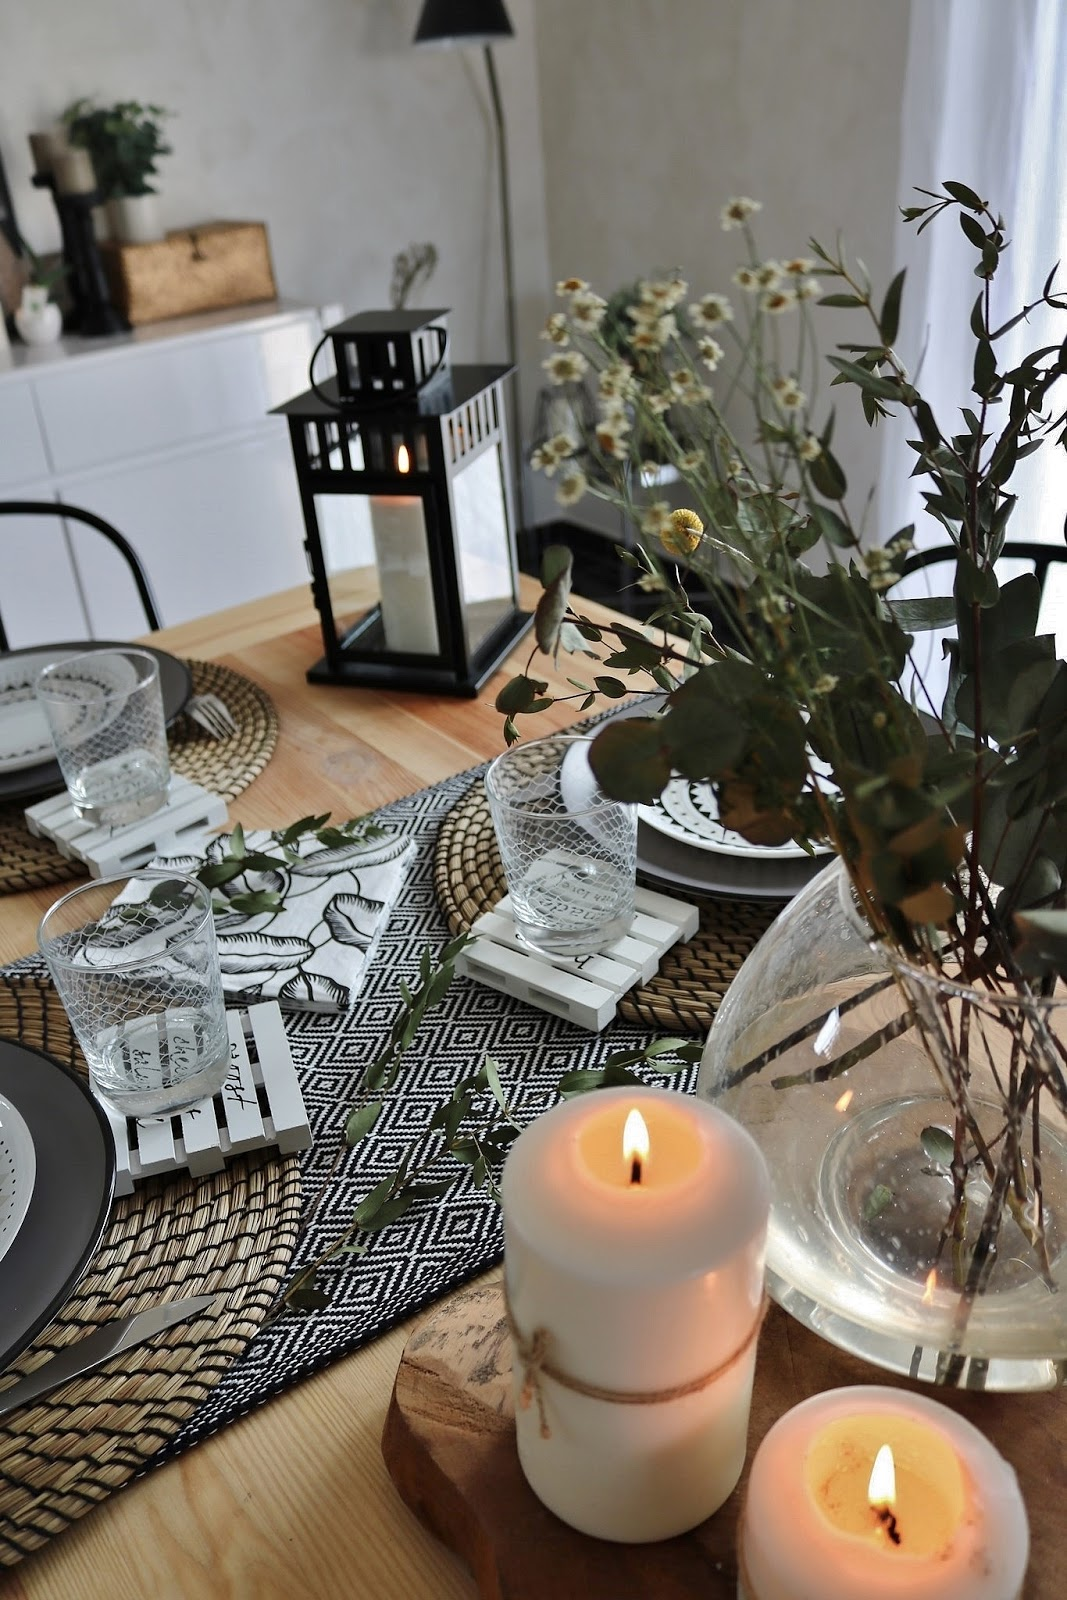 pauline-dress-blog-mode-deco-lifestyle-table-printemps-decoration-eucalyptus-tendance-2018-chemins-de-table-lanterne-boho-chic-boheme-vert-nature-plantes-besancon-fille